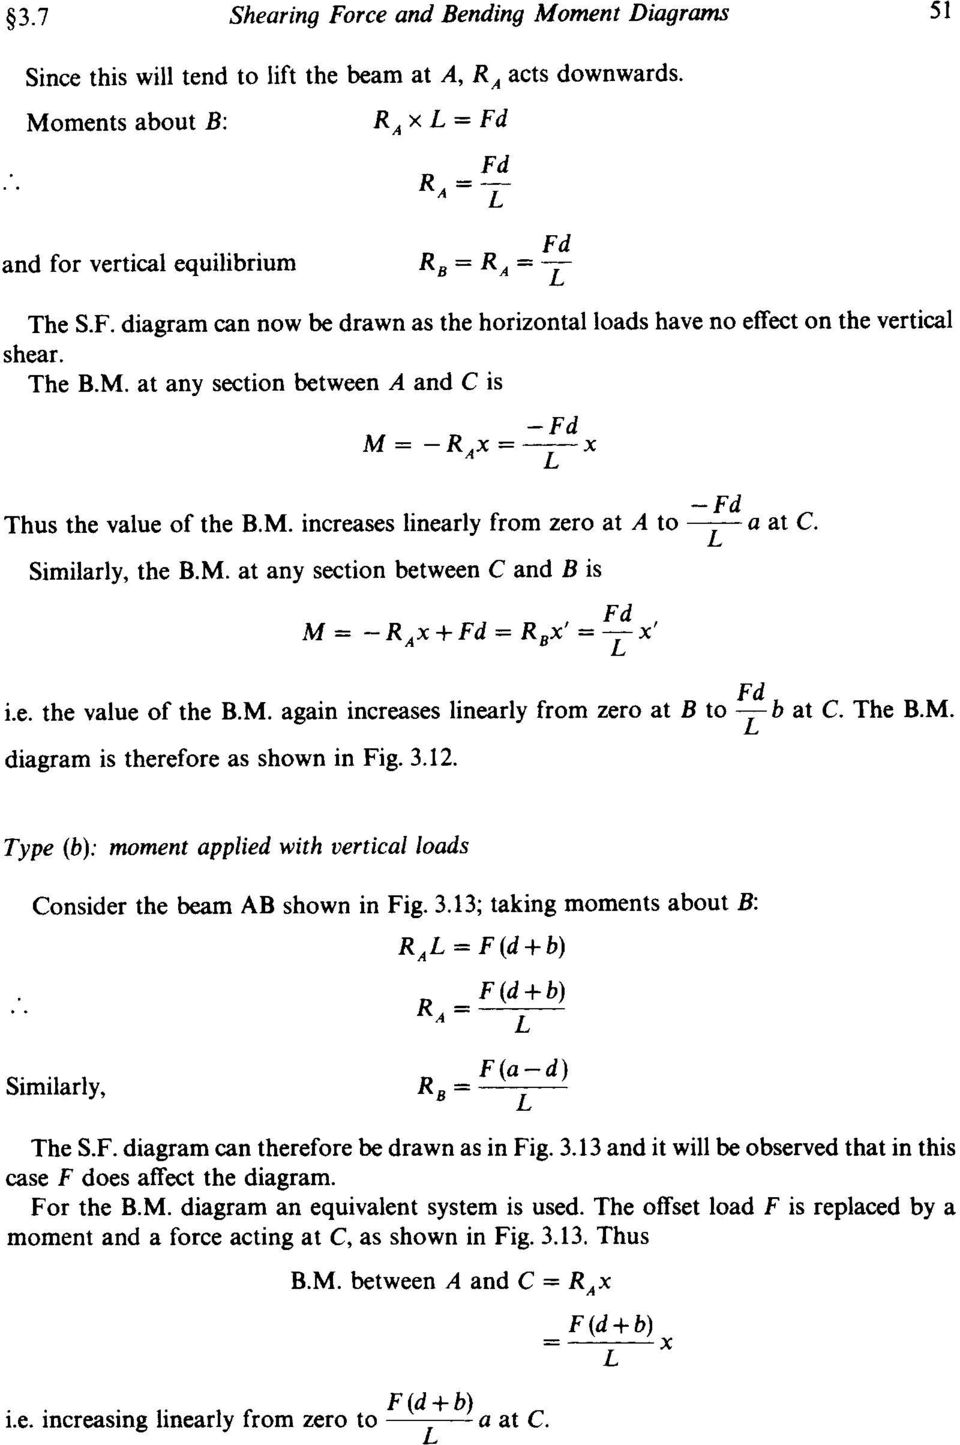 Chapter 3 Shearing Force And Bending Moment Diagrams Summary Pdf Diagram Under Horizontal Loading M Increases Linearly From Zero At A To C L Similarly